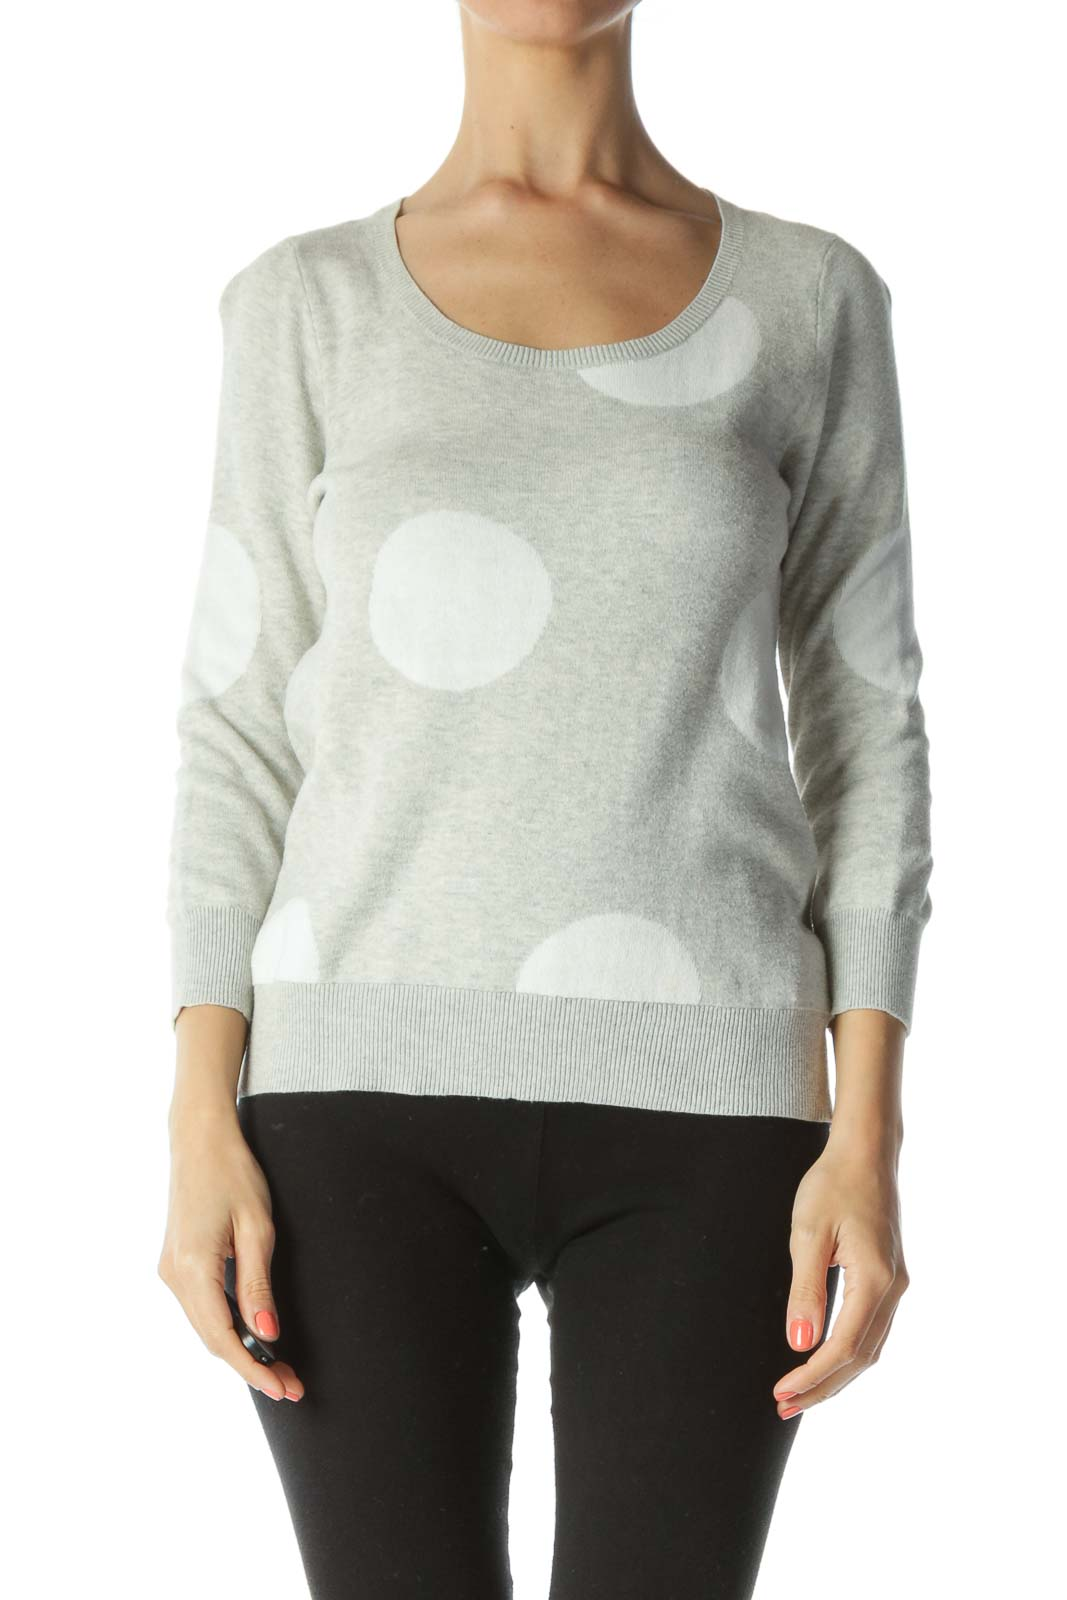 Gray/White 100% Cotton Polka-Dot Pullover Sweater Front